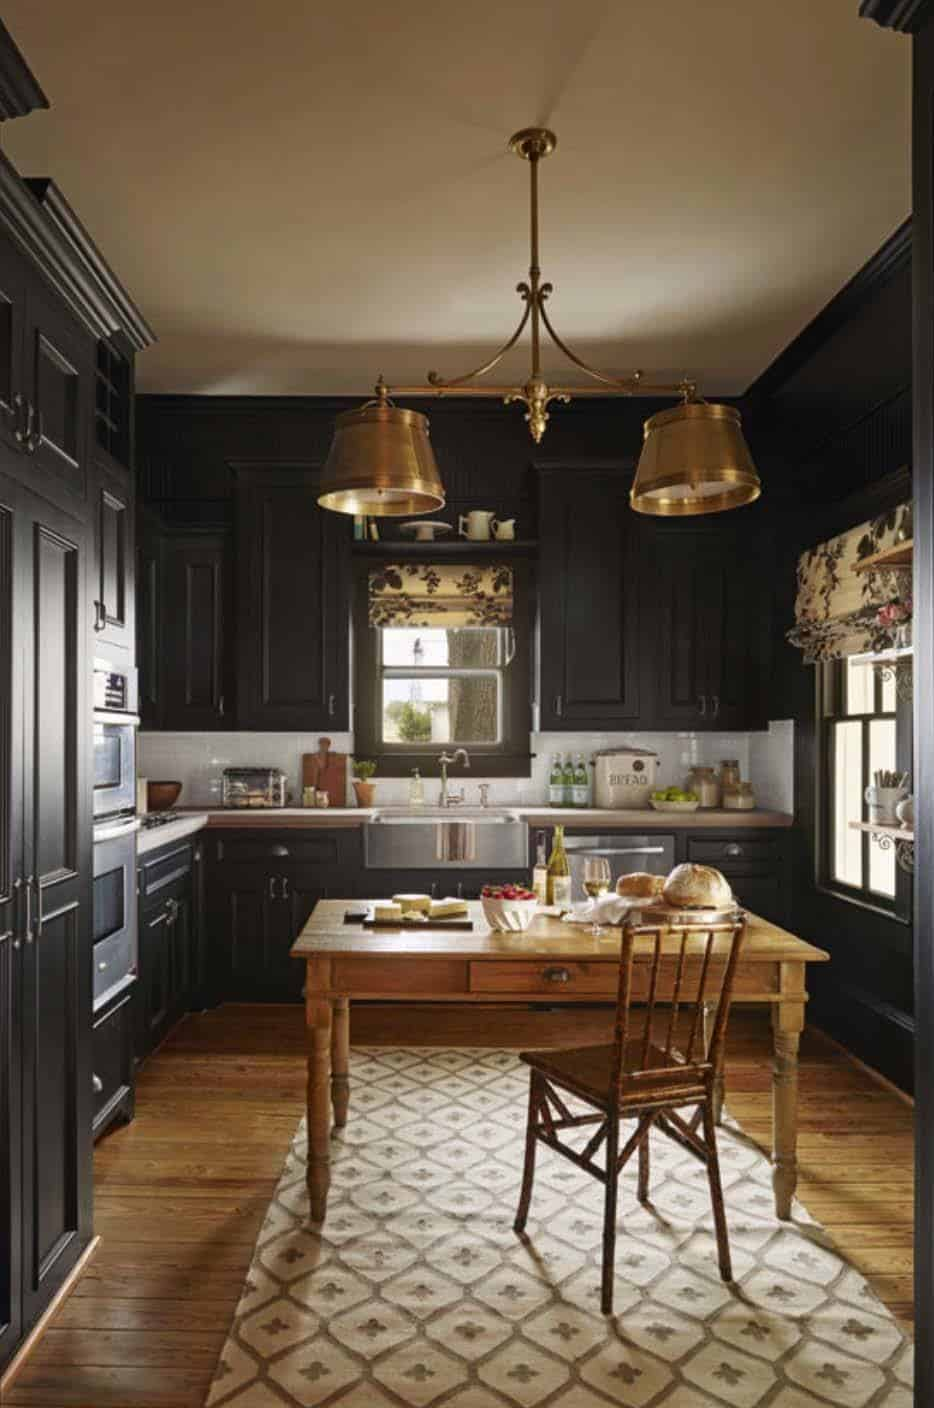 Dramatic Black Kitchen Ideas-30-1 Kindesign